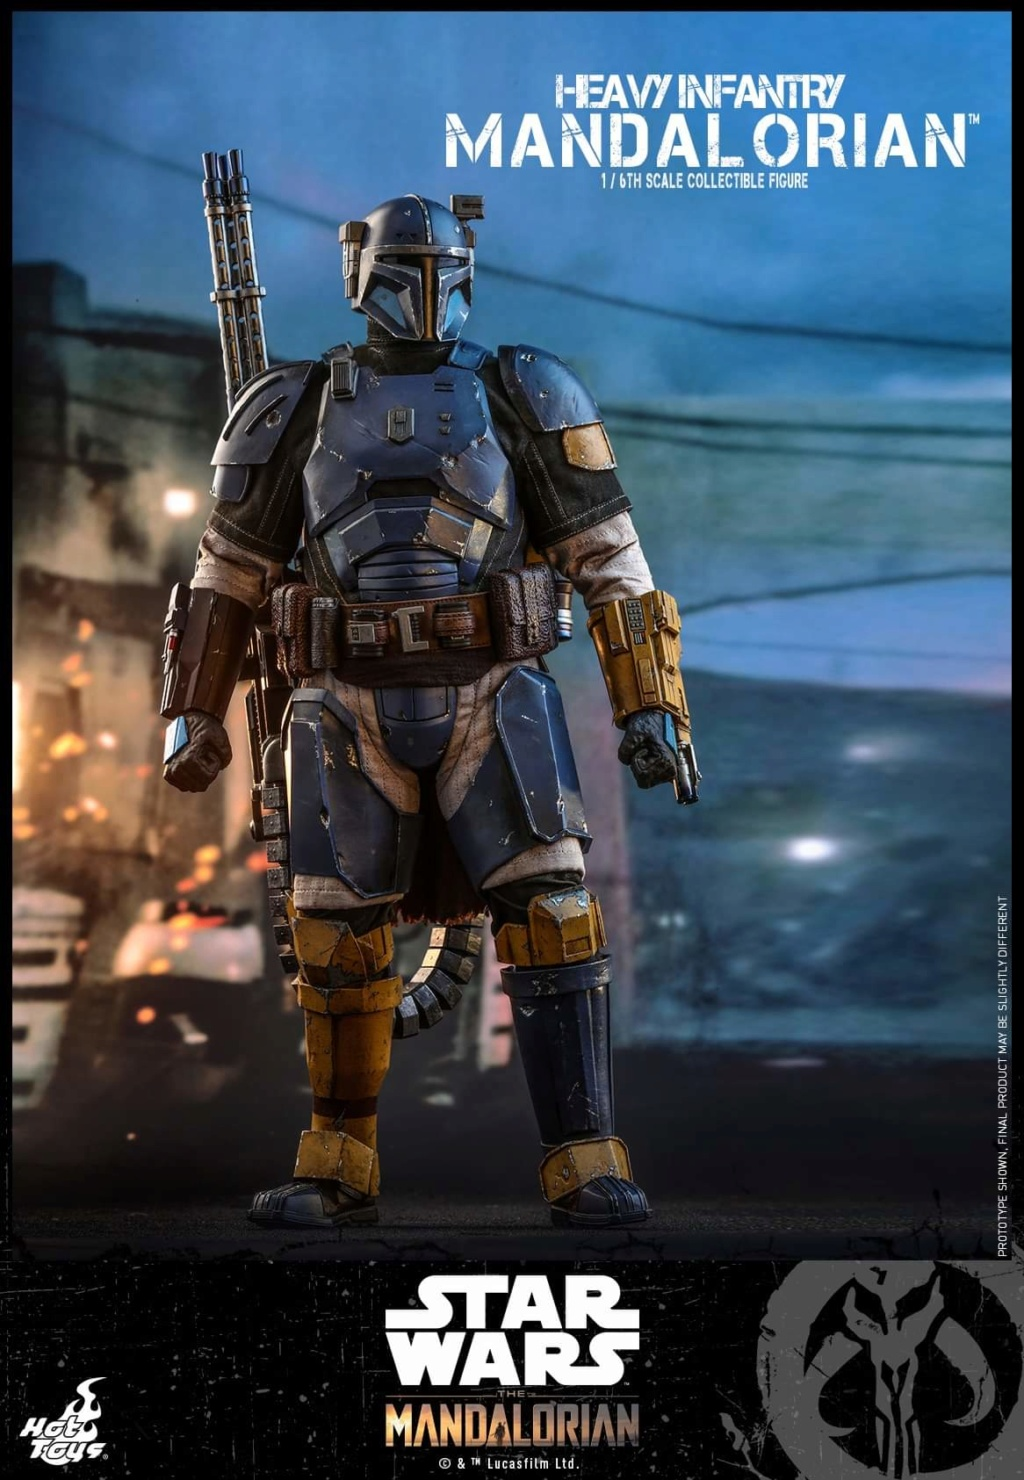 Heavy Infantry Mandalorian Collectible Figure 1/6th Hot Toy. Fb_img59